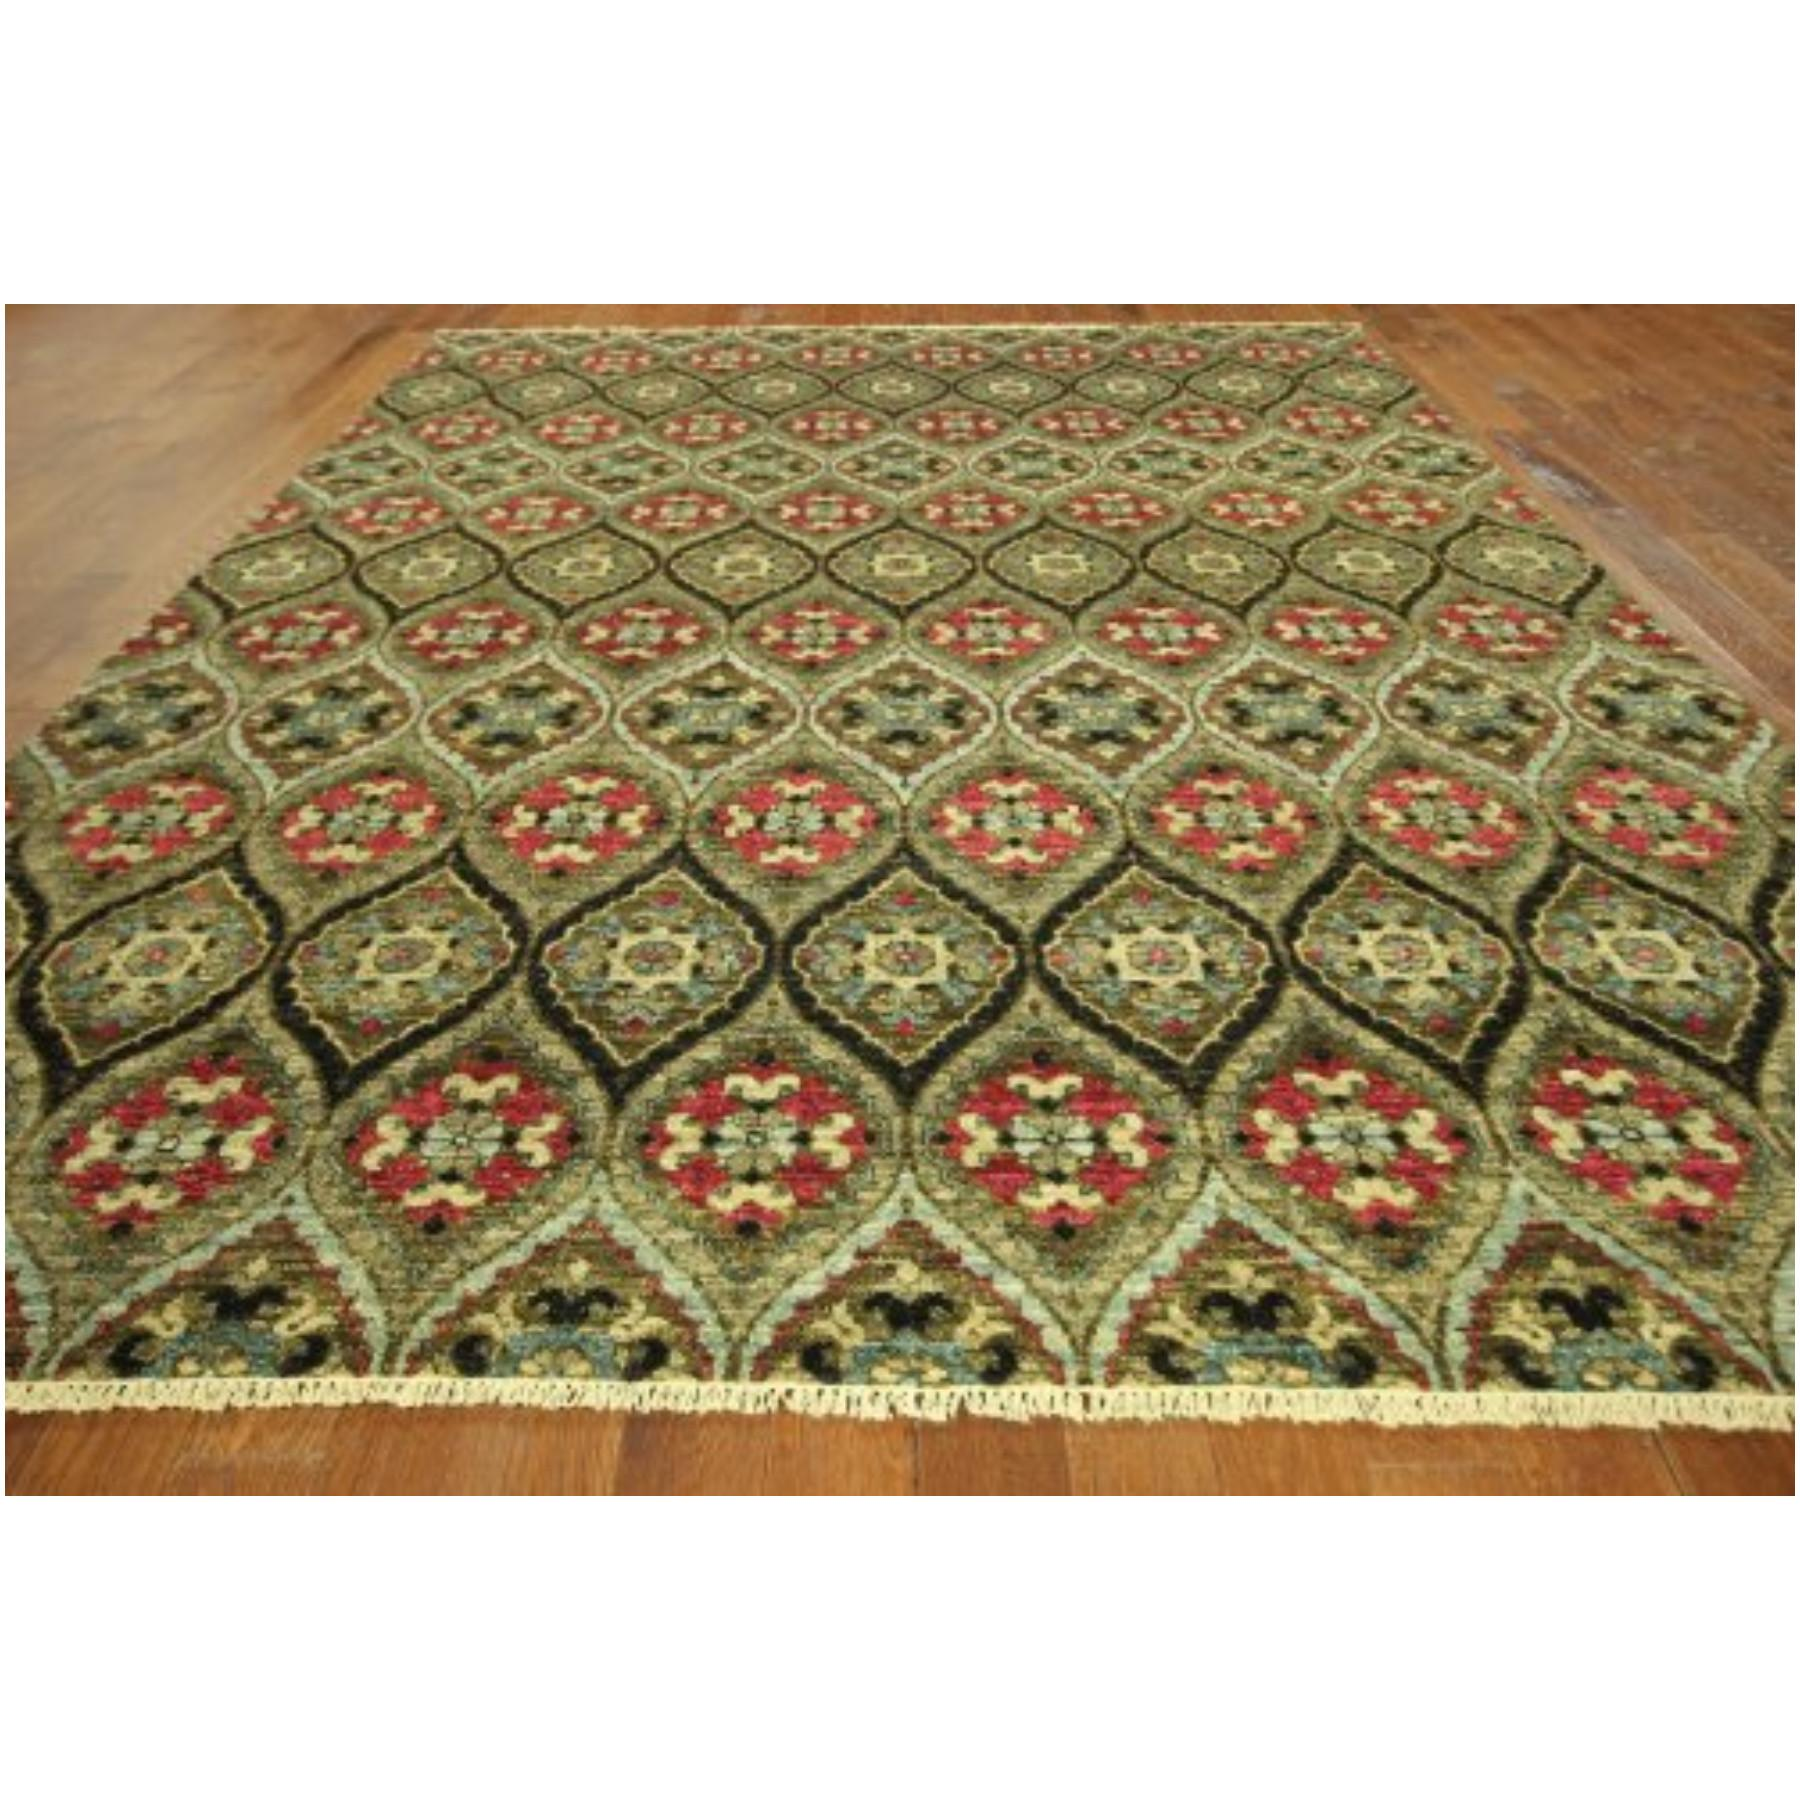 Rug New Exquisite High End Oriental Ikat Hand